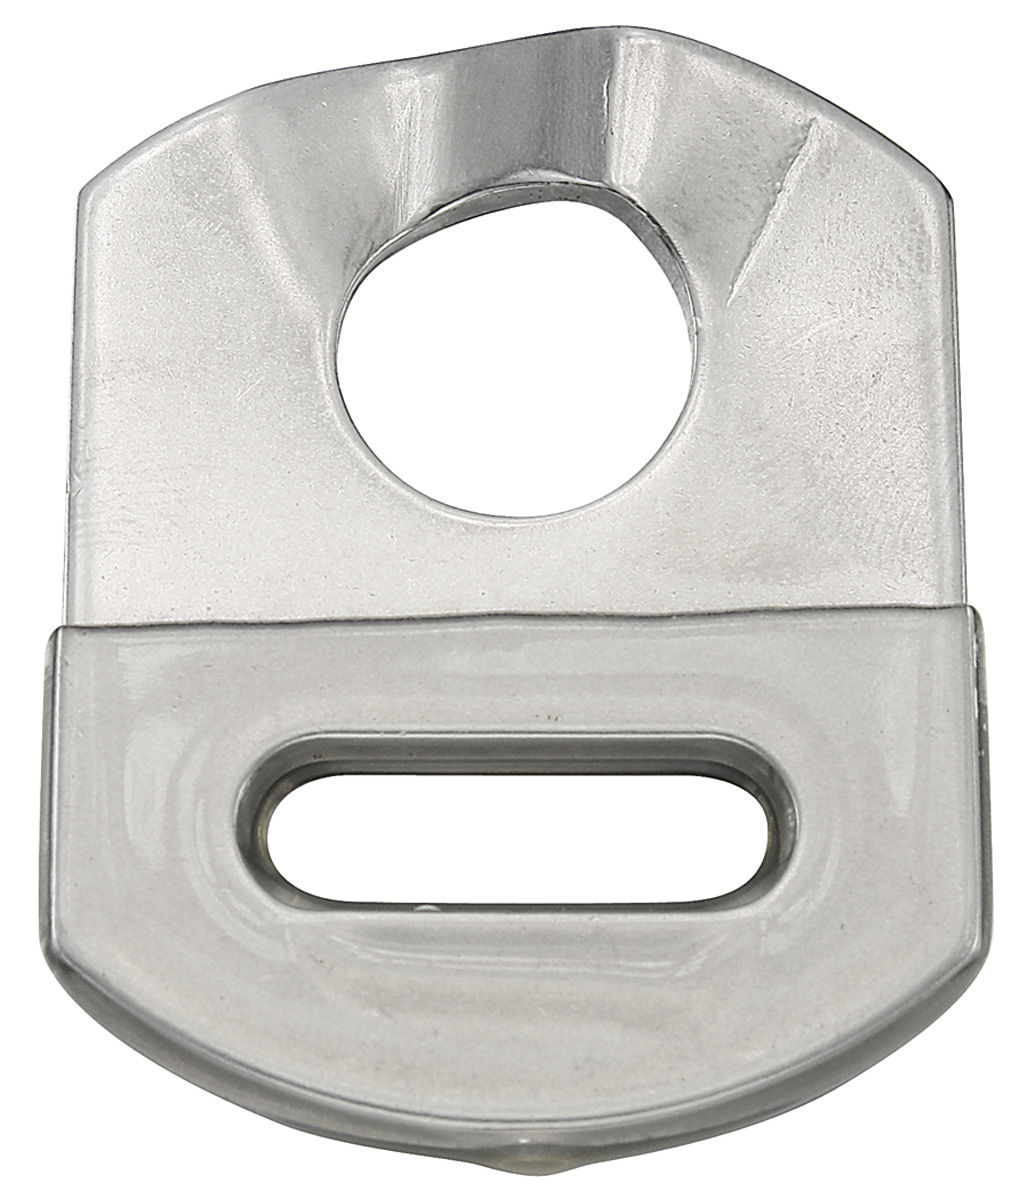 Photo of Tempest Seat Belt Anchor Plate stainless